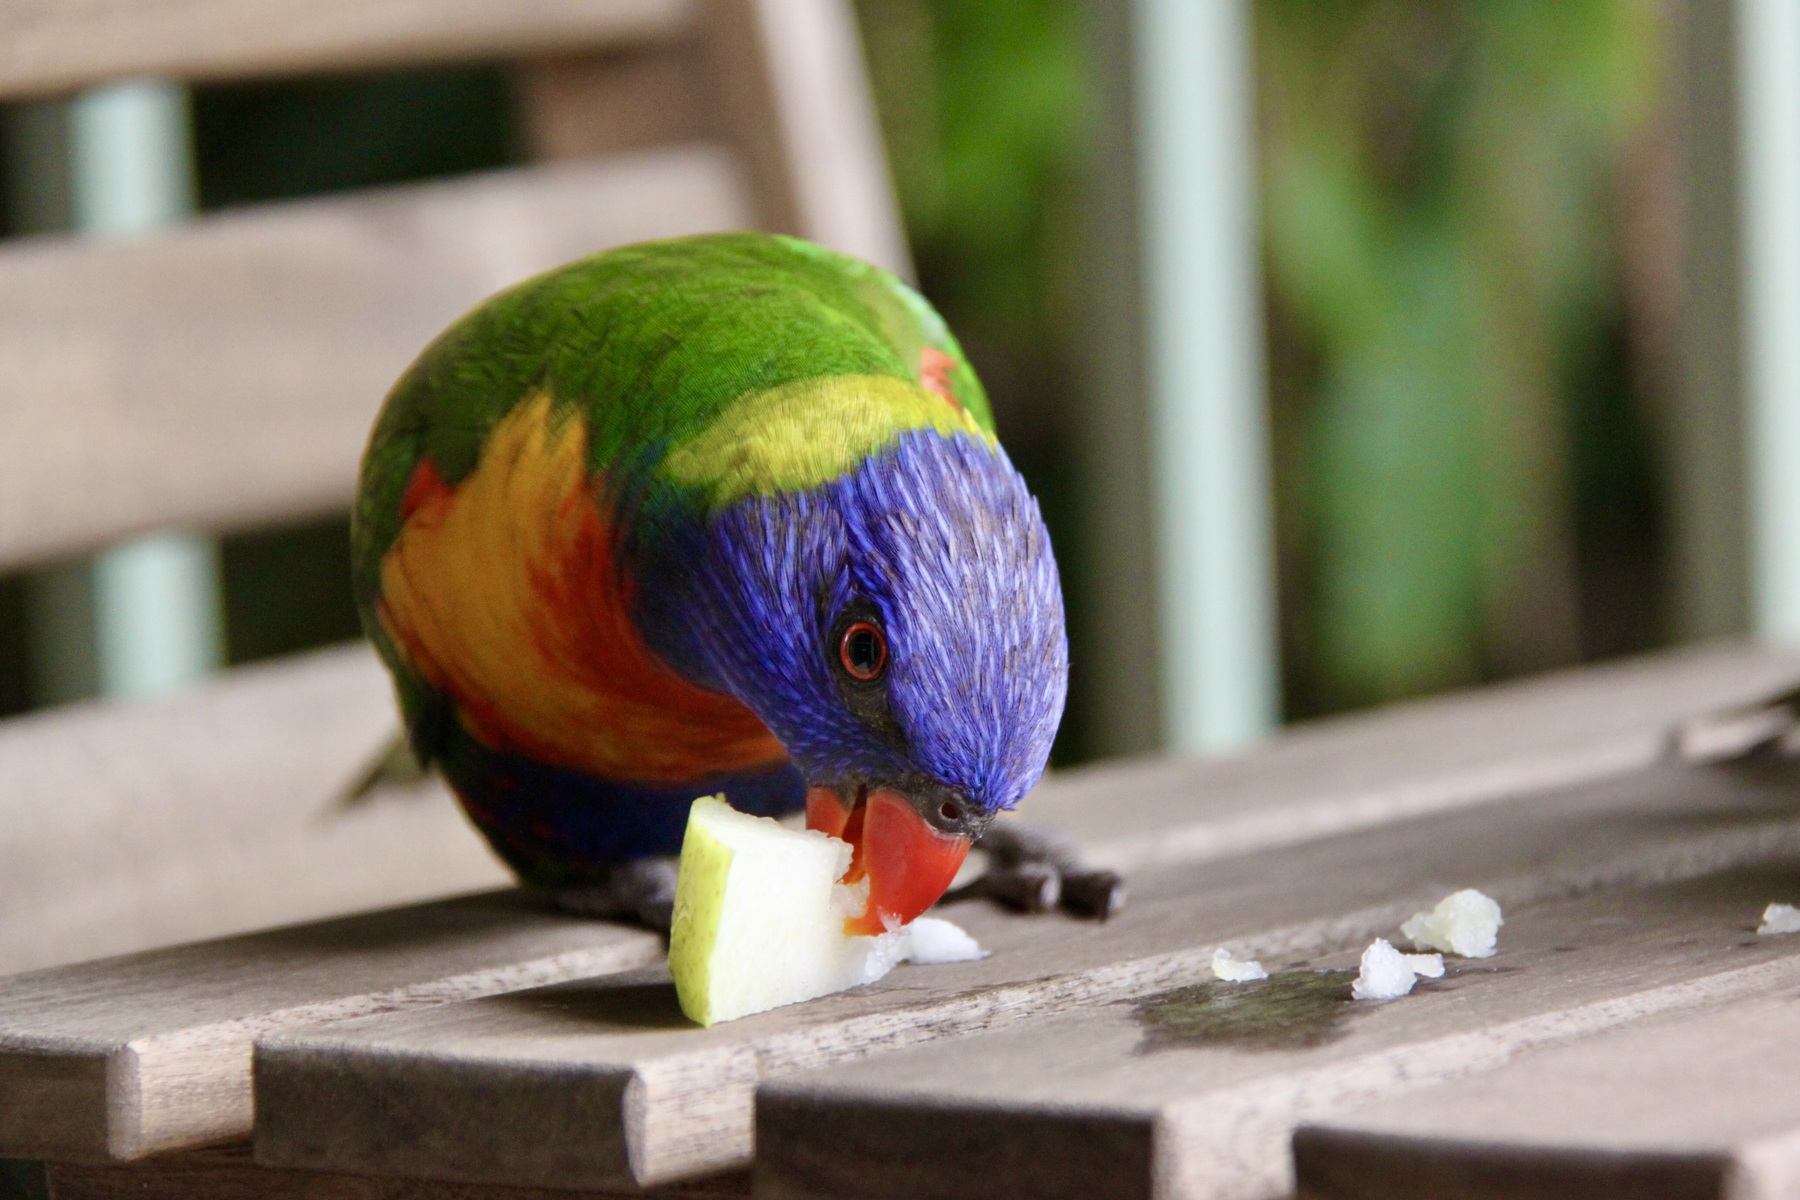 A rainbow lorikeet holds a piece of pear down to eat it while on an outdoor setting with a railing and macadamia tree in the background